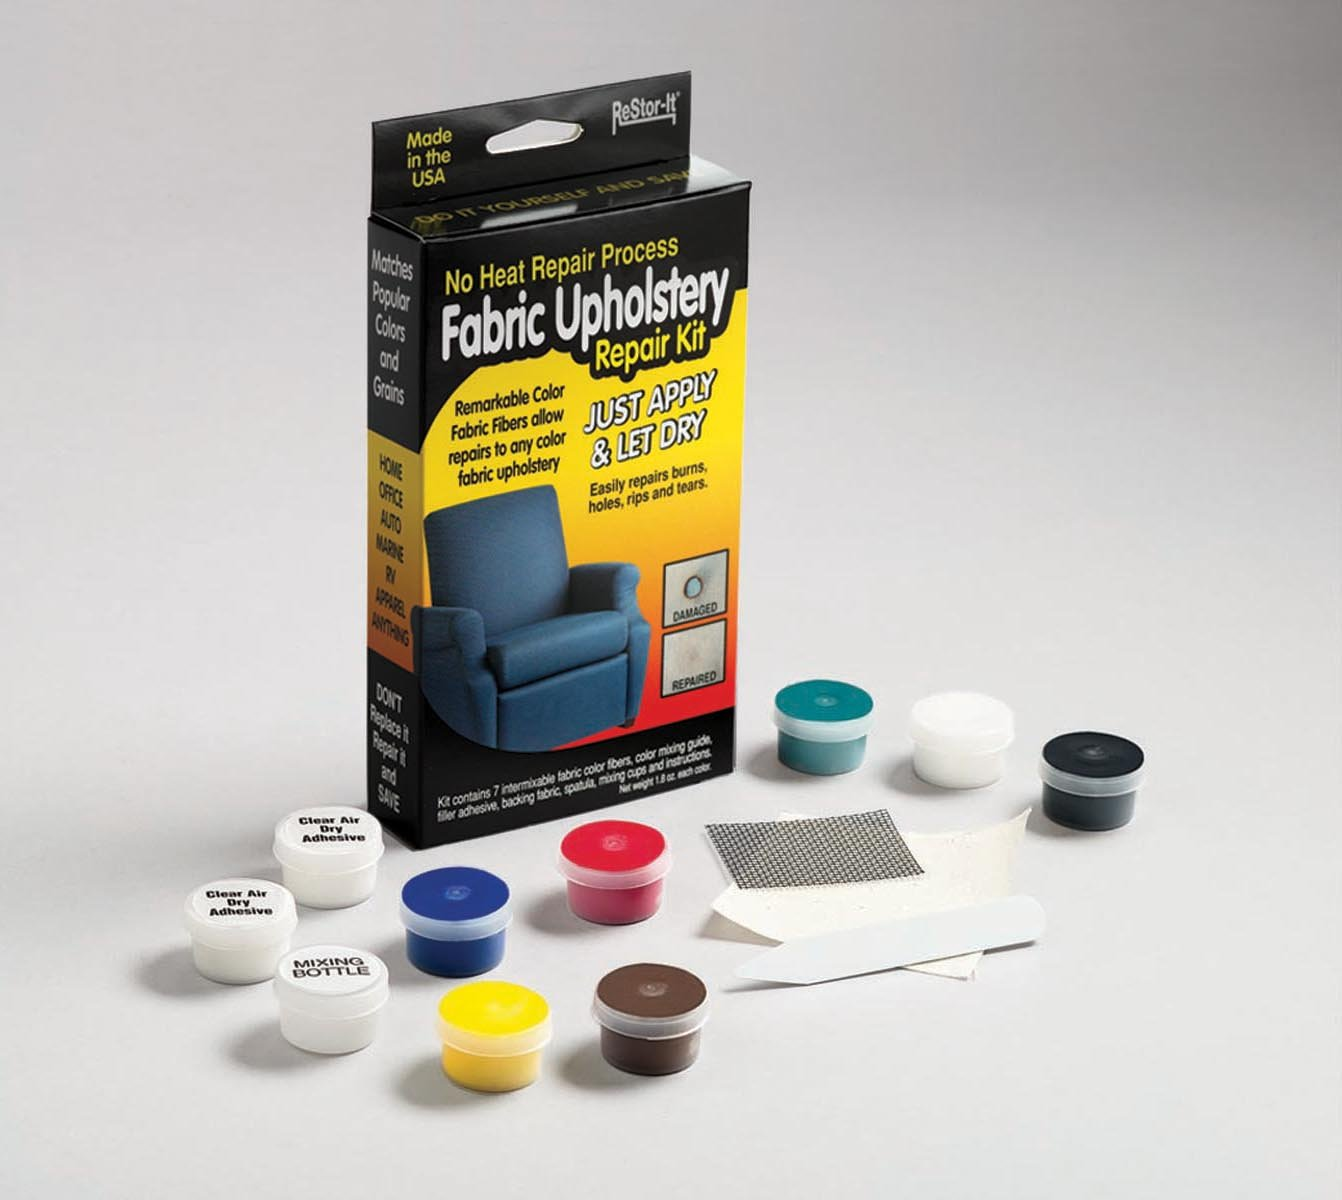 ReStor-it Fabric Upholstery Repair Kit, 7 Intermixable Colors, Mixing Cup, Applicator, Color Mixing Guide (18075) Master Manufacturing